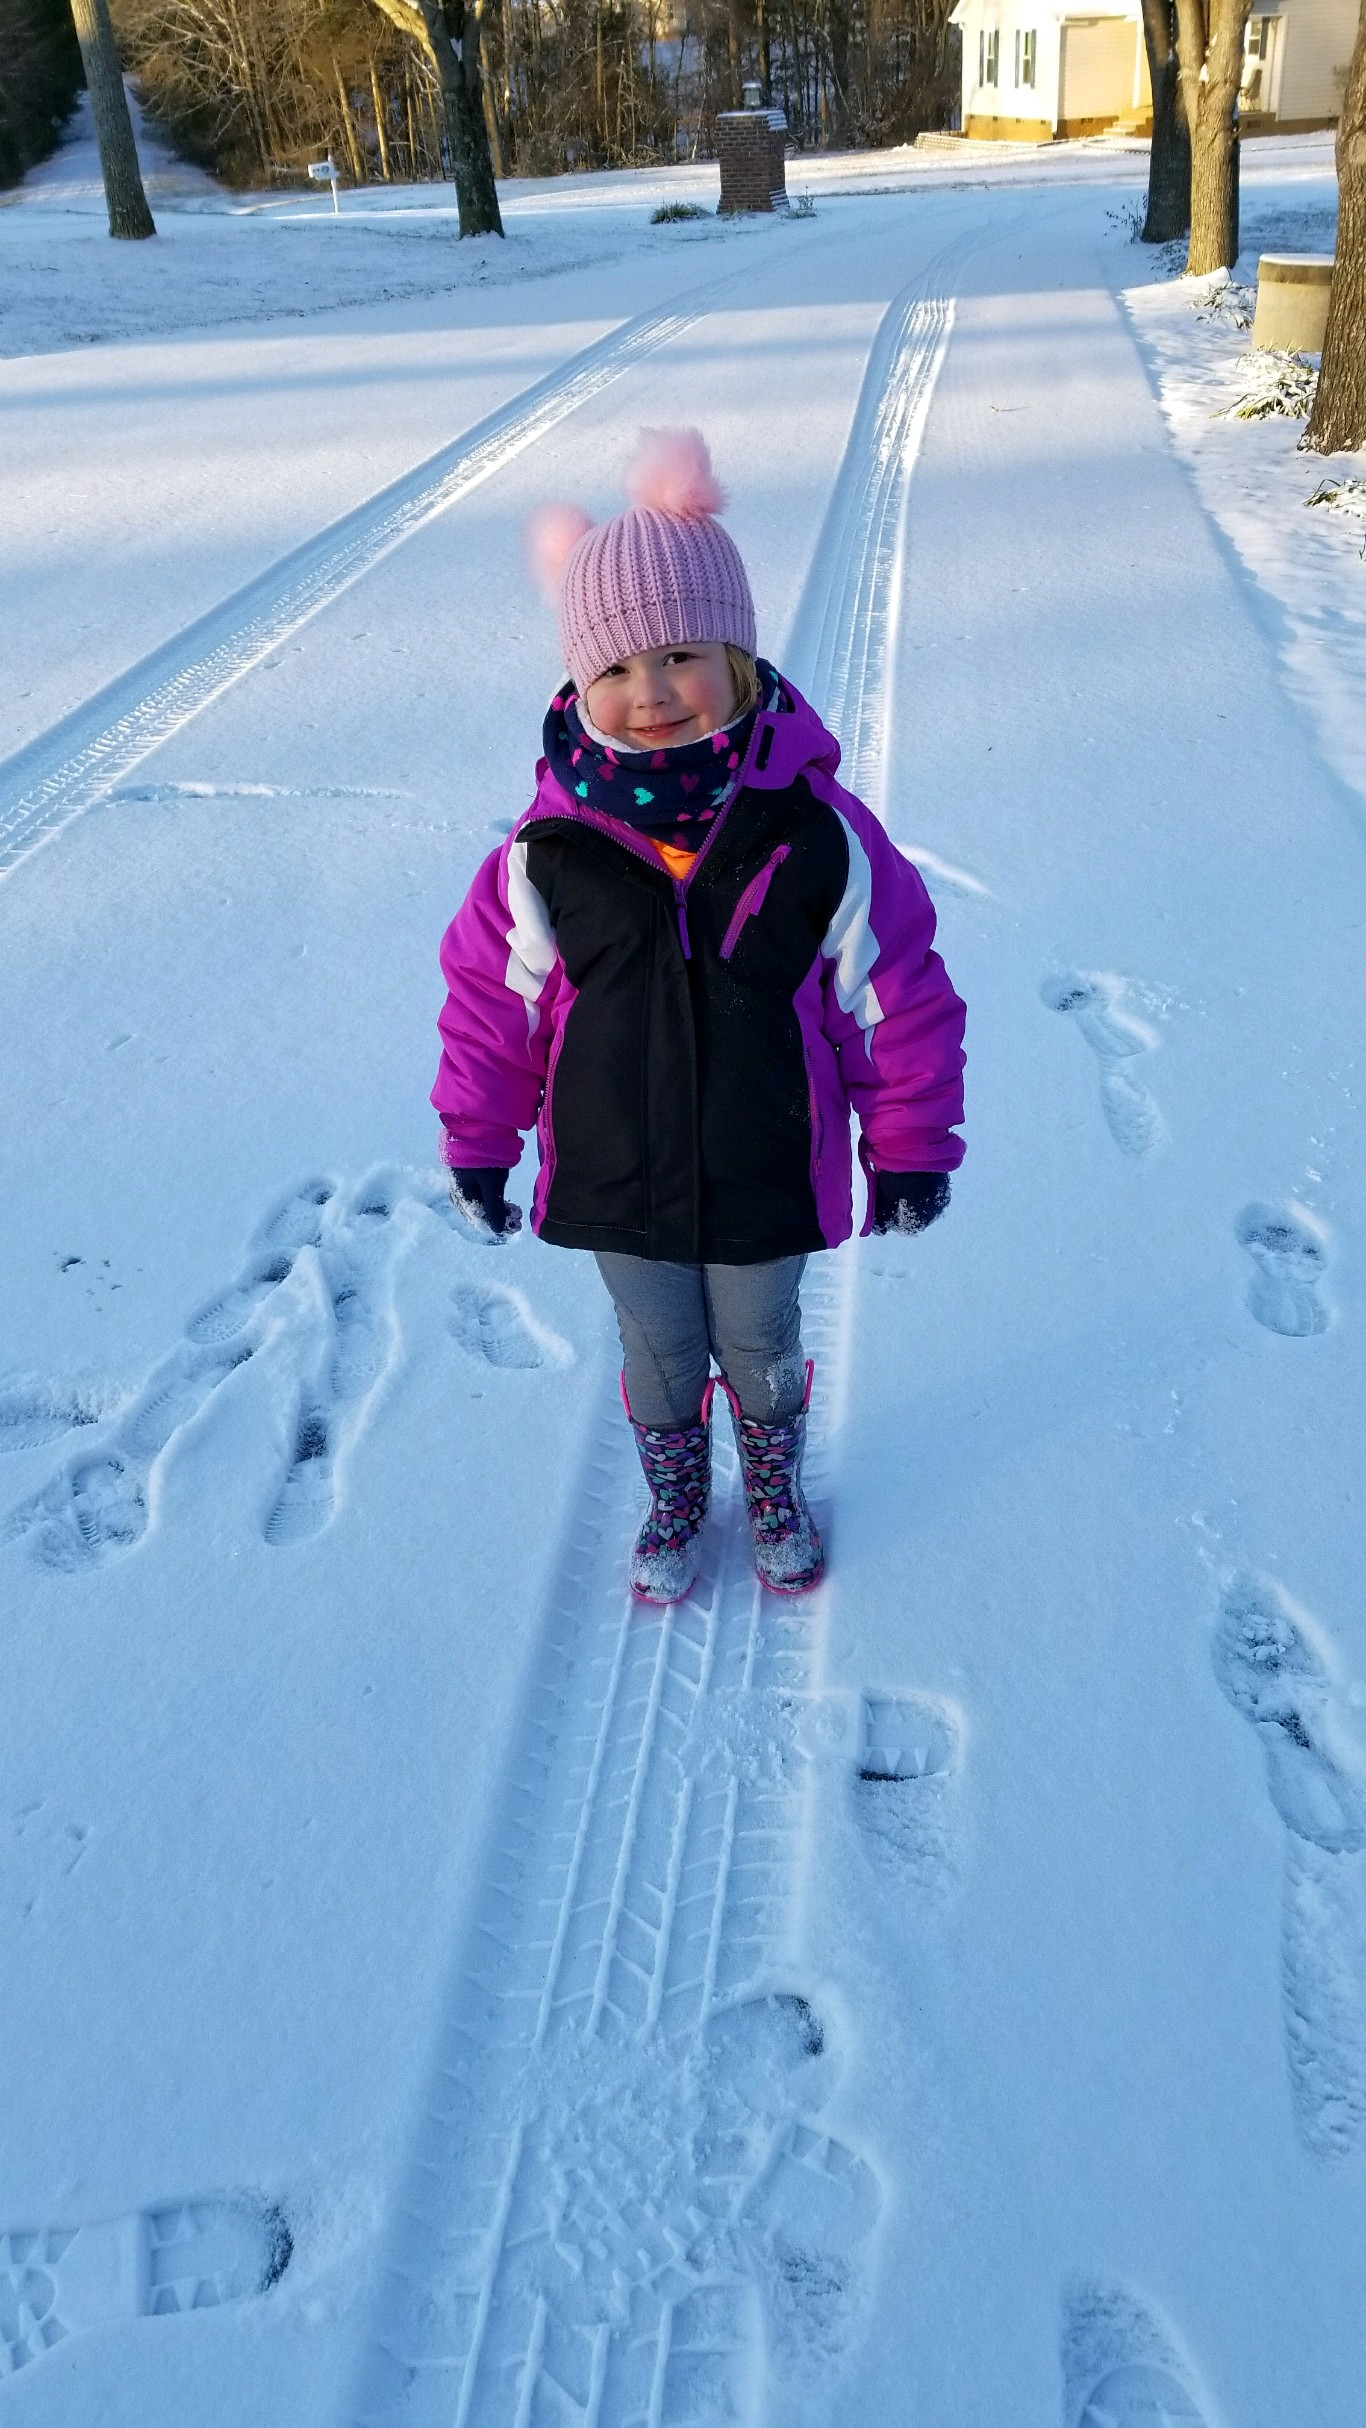 "<div class=""meta image-caption""><div class=""origin-logo origin-image none""><span>none</span></div><span class=""caption-text"">3-year-old Isla Williams enjoying the snow in Mebane (Credit: Marsha Rudd)</span></div>"